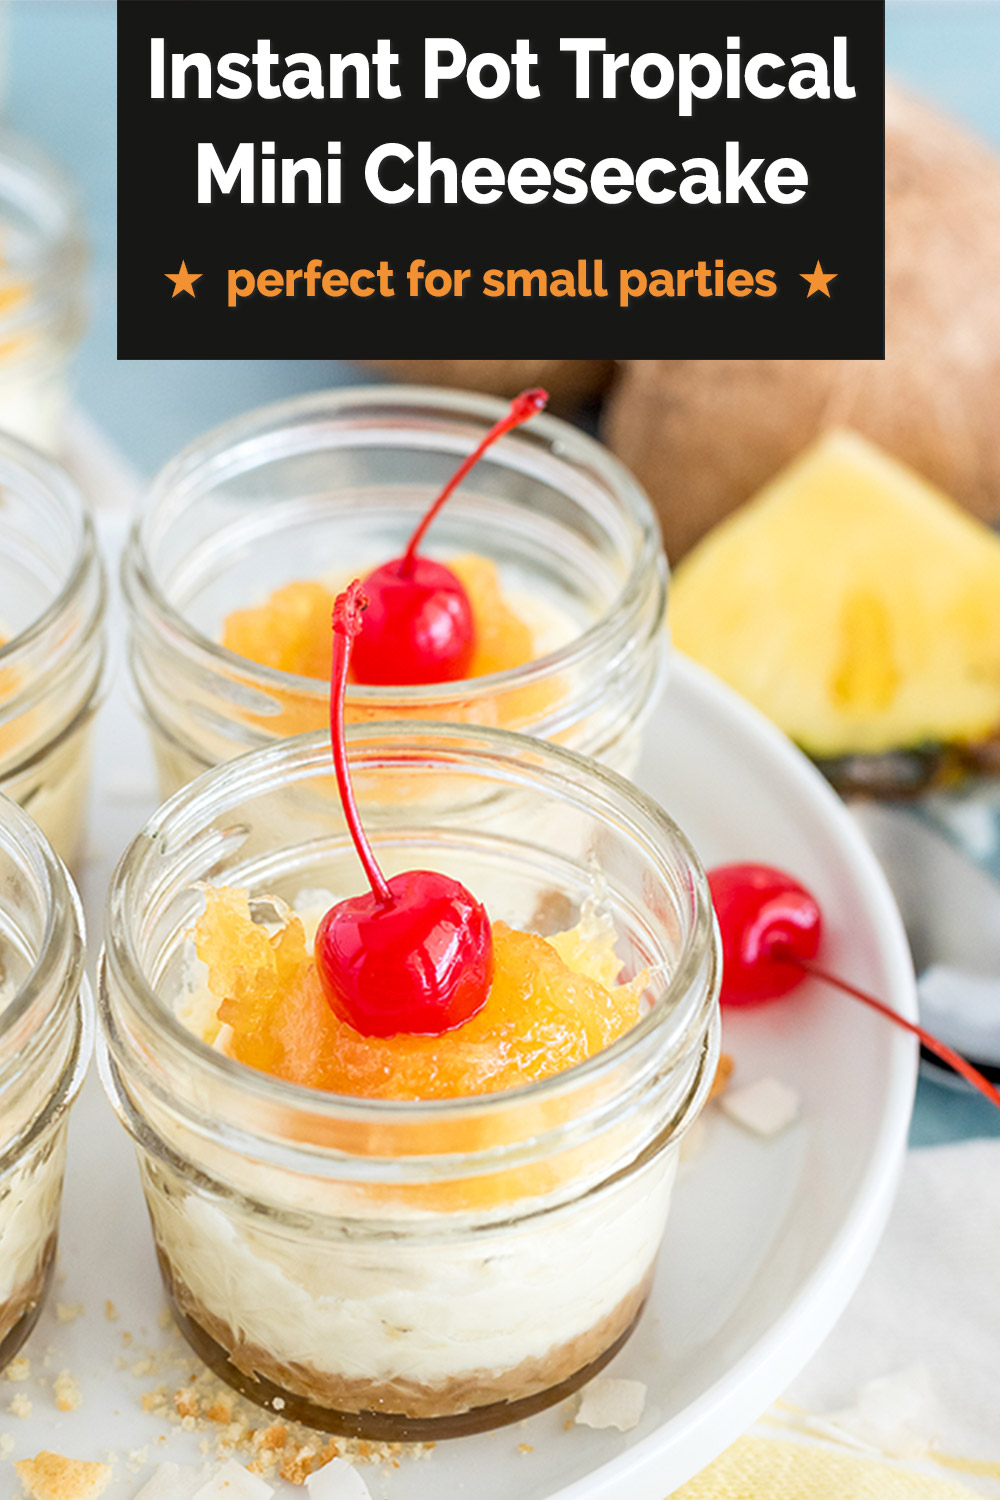 """A Pinterest image that reads """"Instant Pot Tropical Mini Cheesecakes: perfect for small parties"""" overlaid on a close-up image of two mini mason jars filled with coconut cheesecake, pineapple topping, and a maraschino cherry with a pineapple wedge and a coconut in the background via @PressureCook2da"""